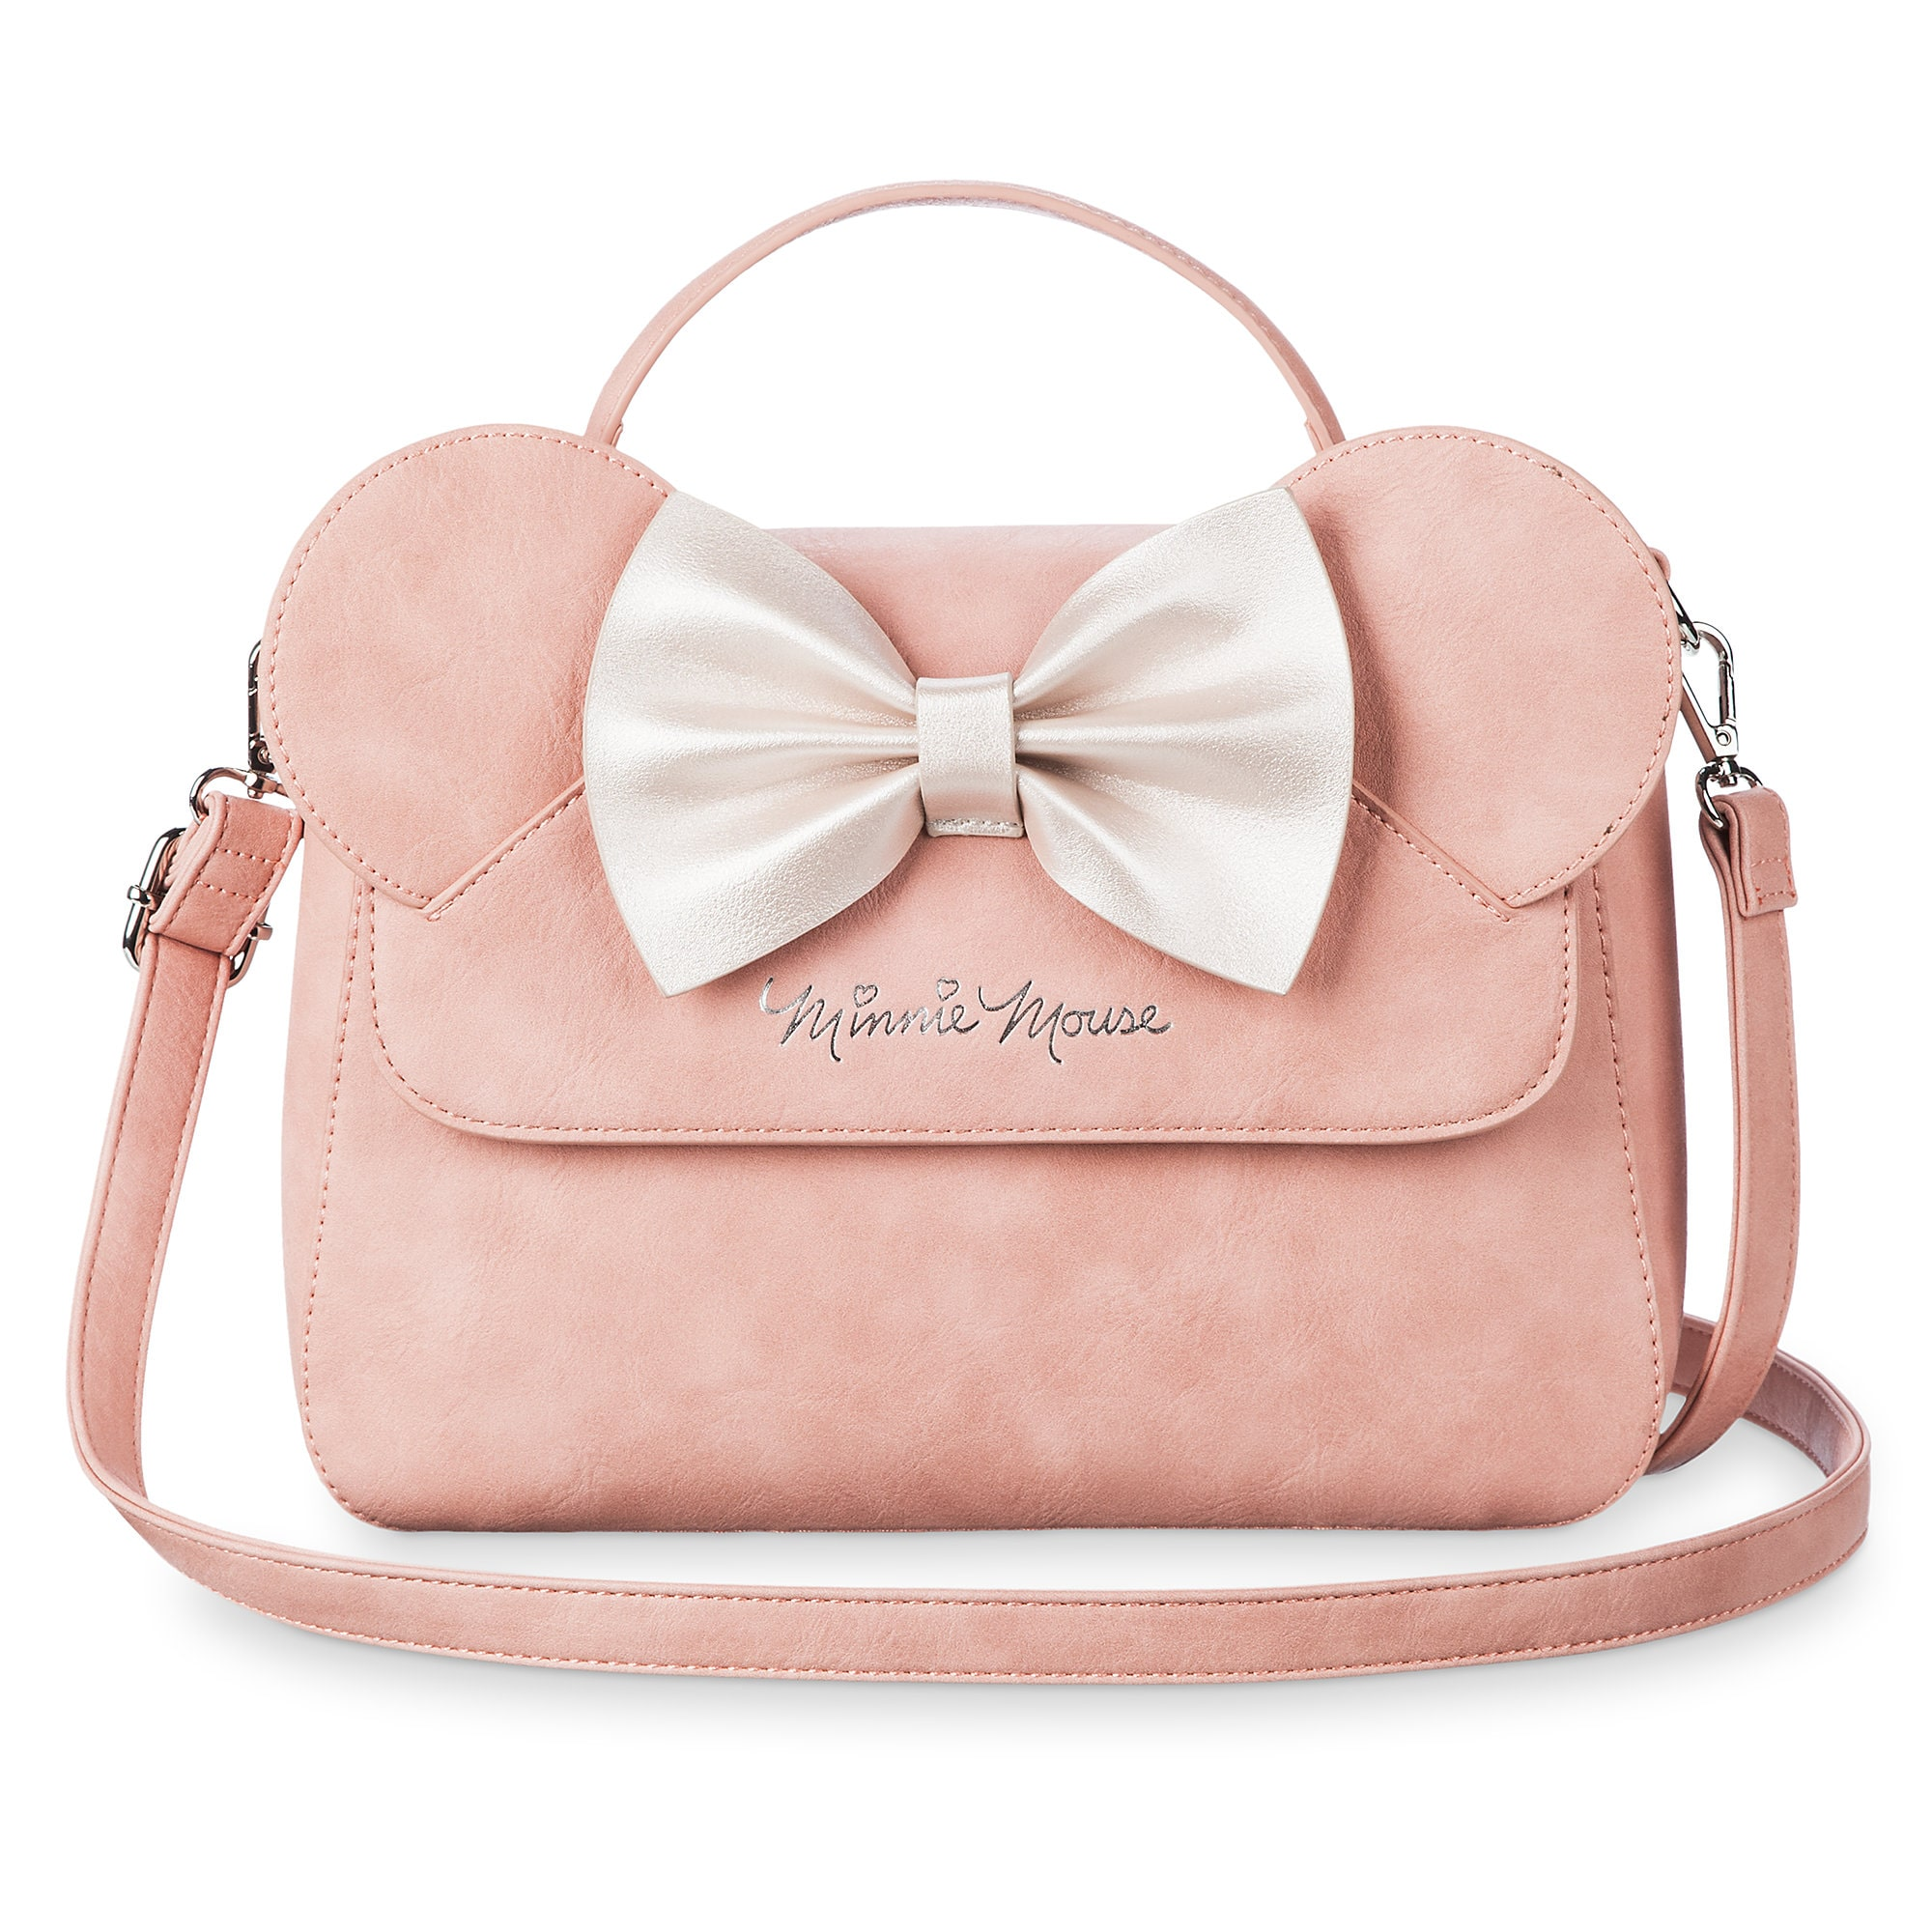 8766dd12c7e Minnie Mouse Pink Bow Crossbody Bag by Loungefly